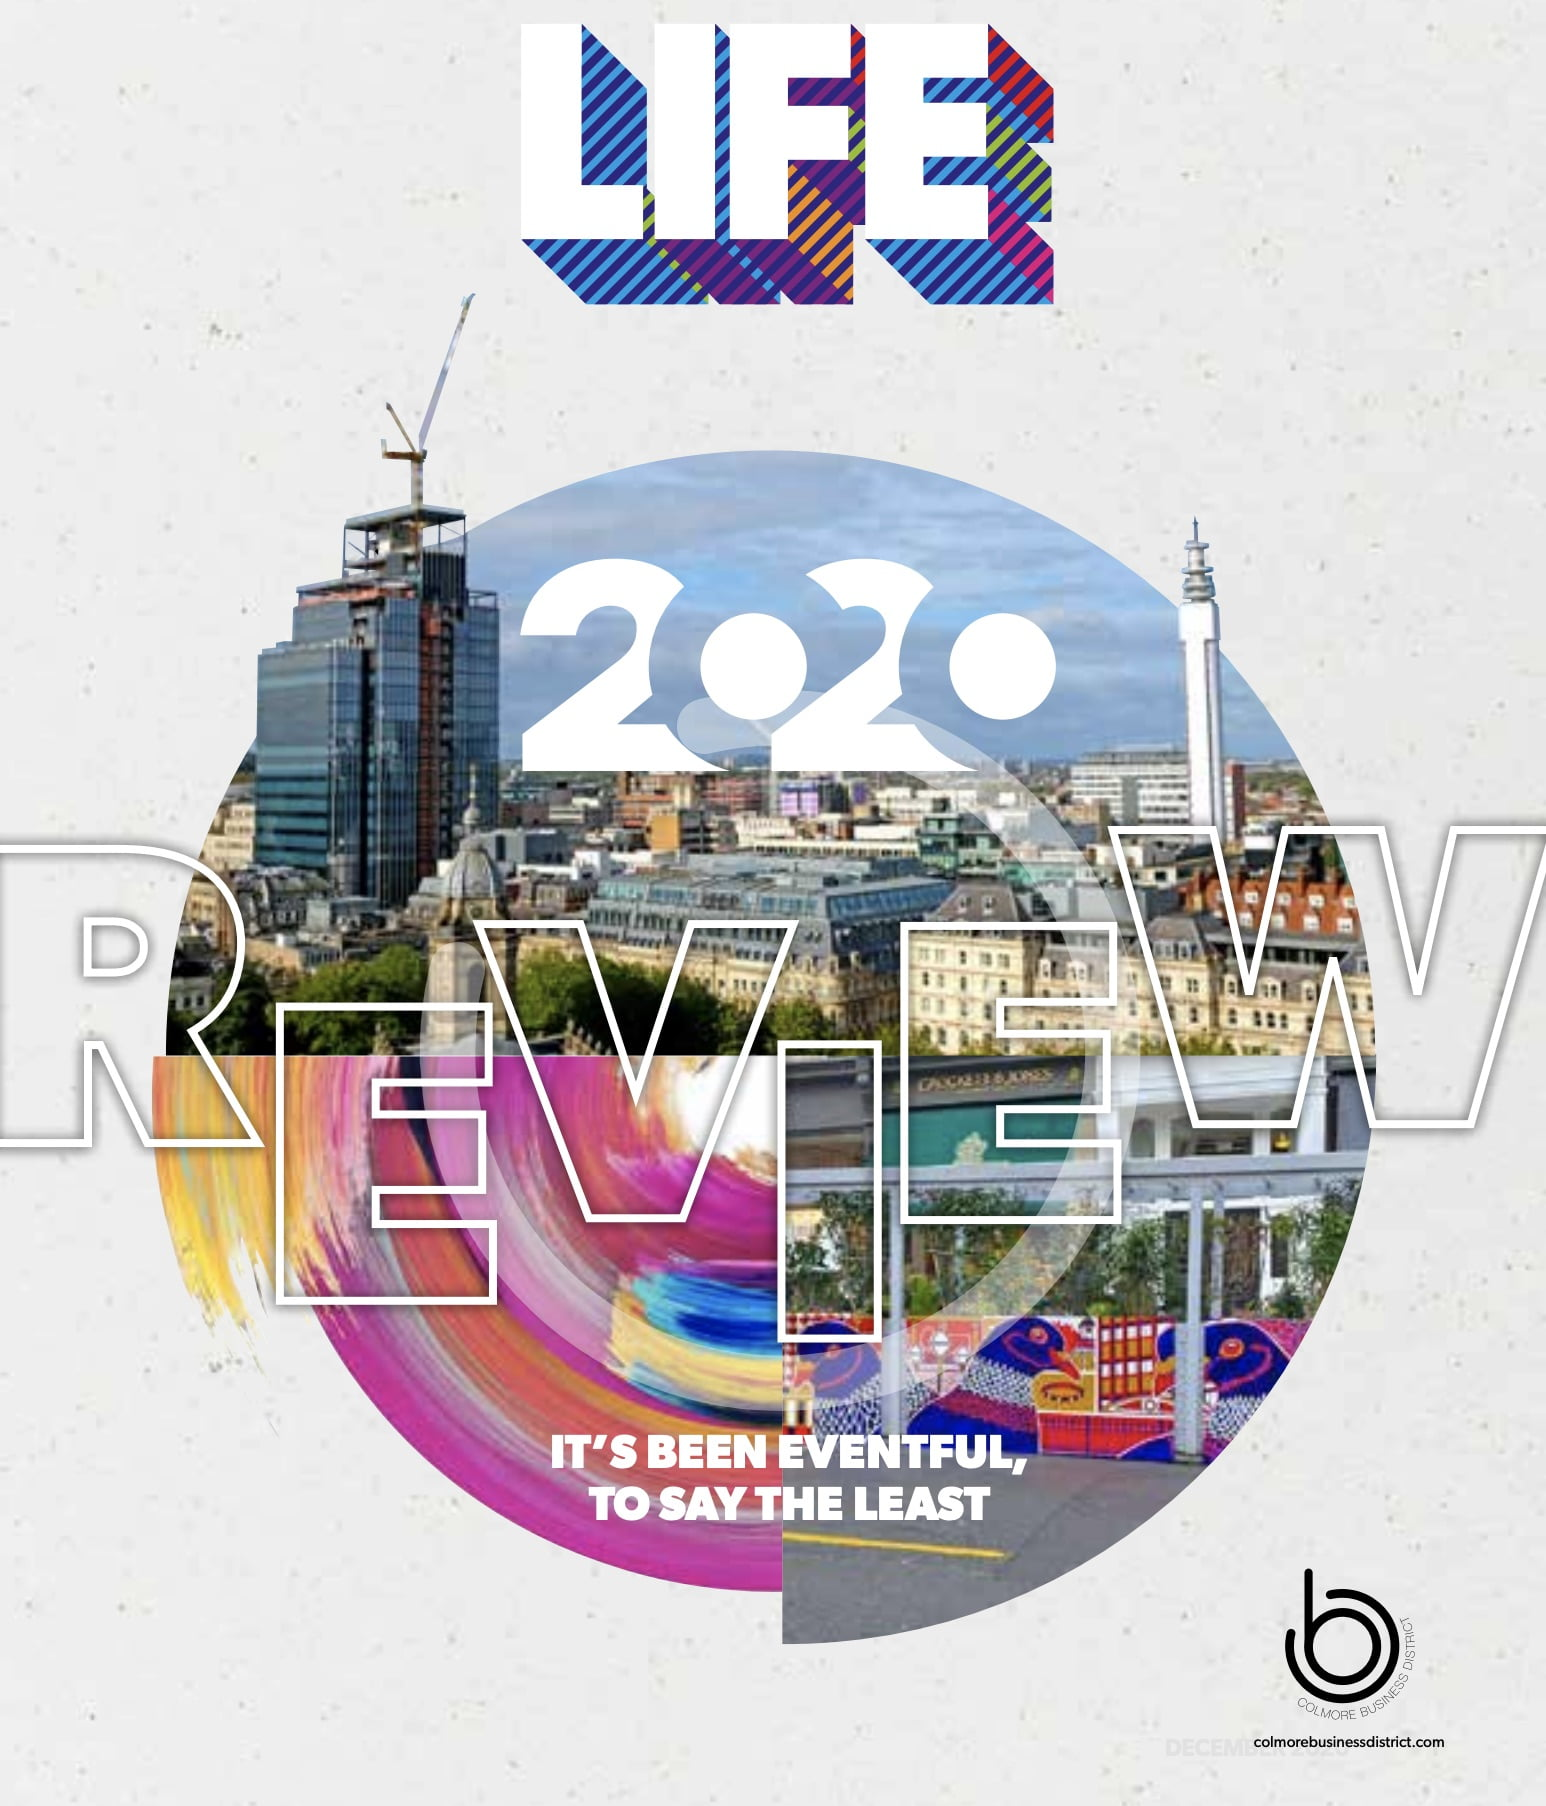 Colmore Life 2020 Review image Publications